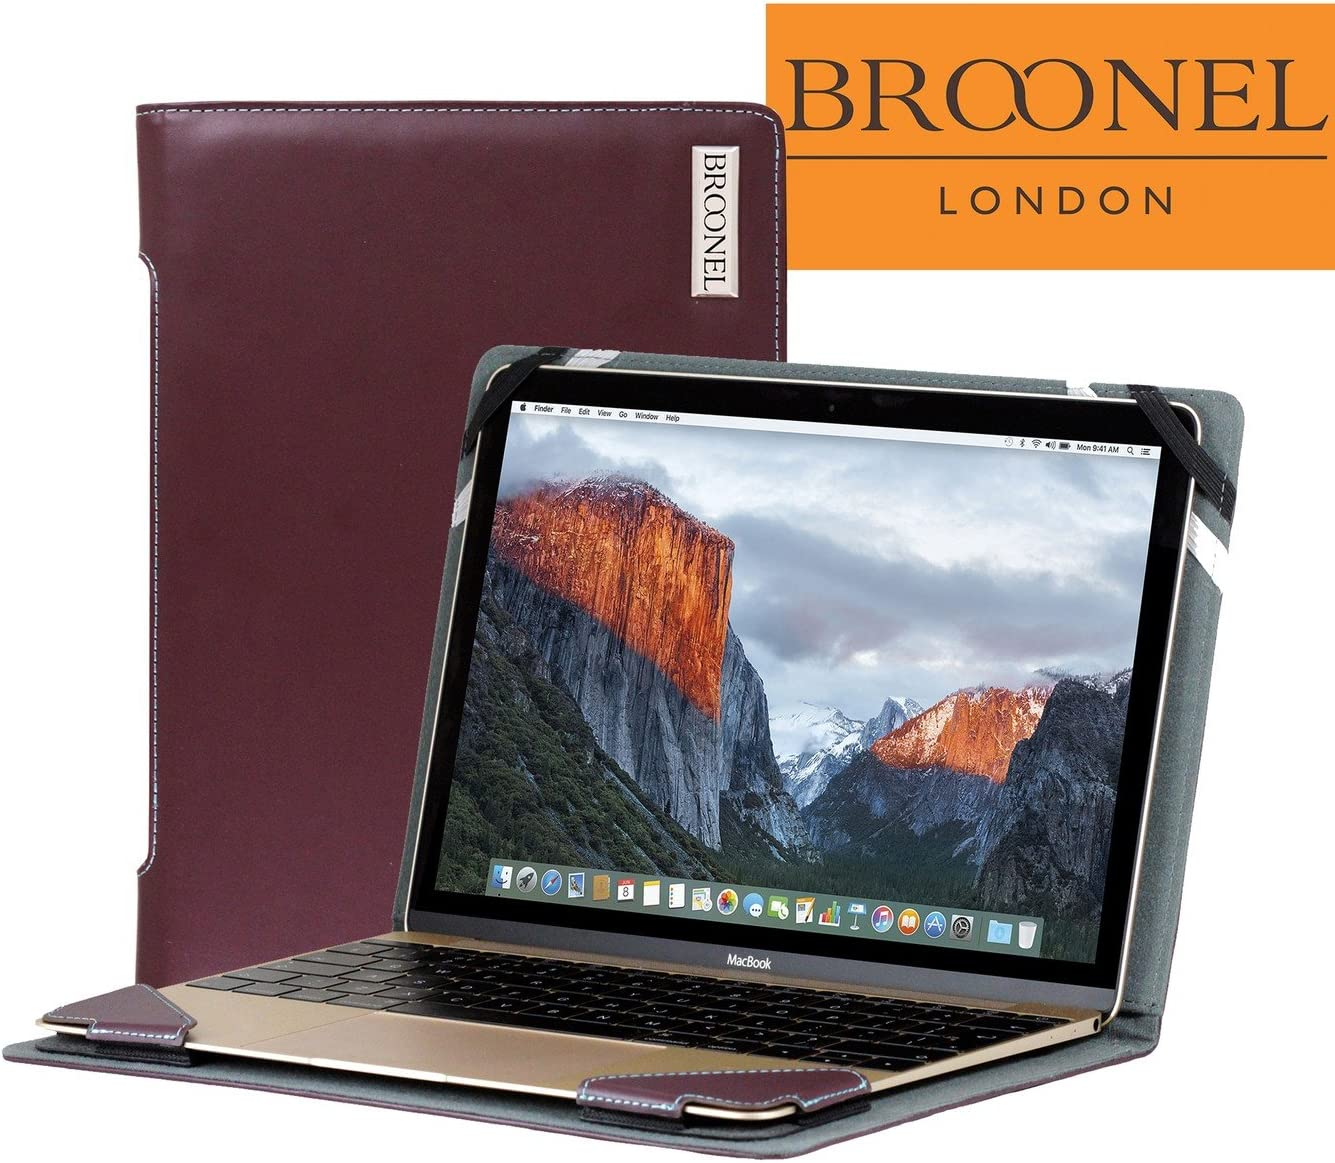 Broonel London - Profile Series - Purple Leather Luxury Laptop Case For the Acer Aspire Switch 11 V SW5-173